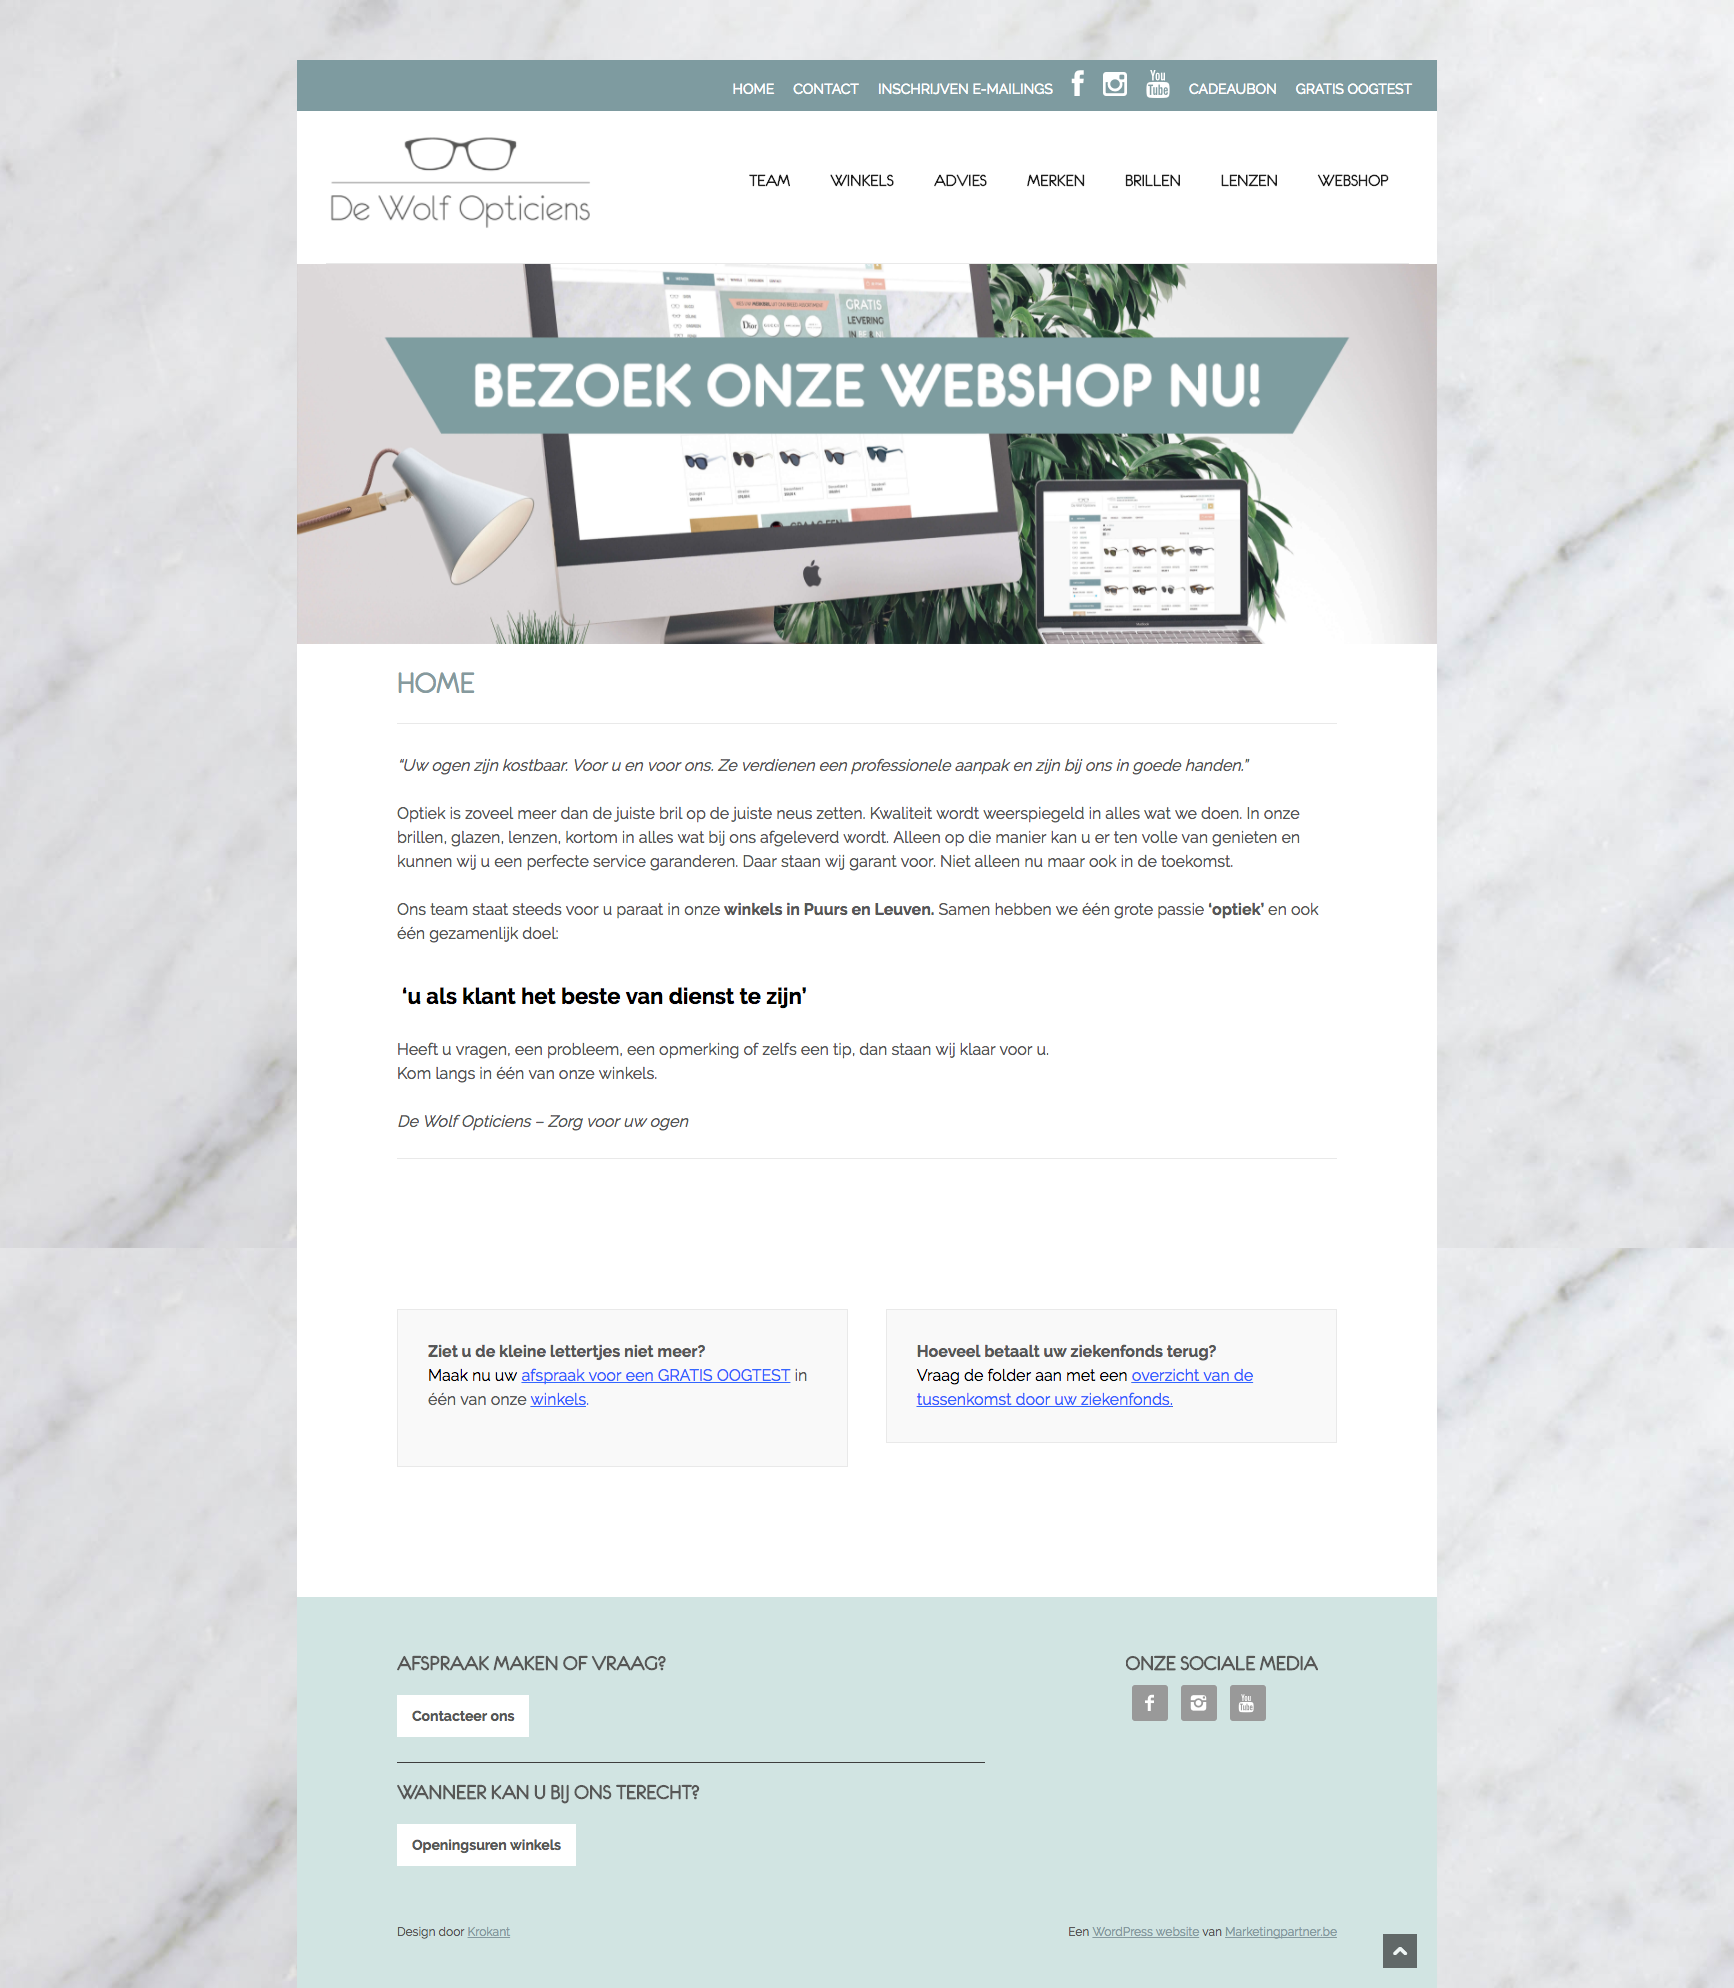 De Wolf Opticiens WordPress website